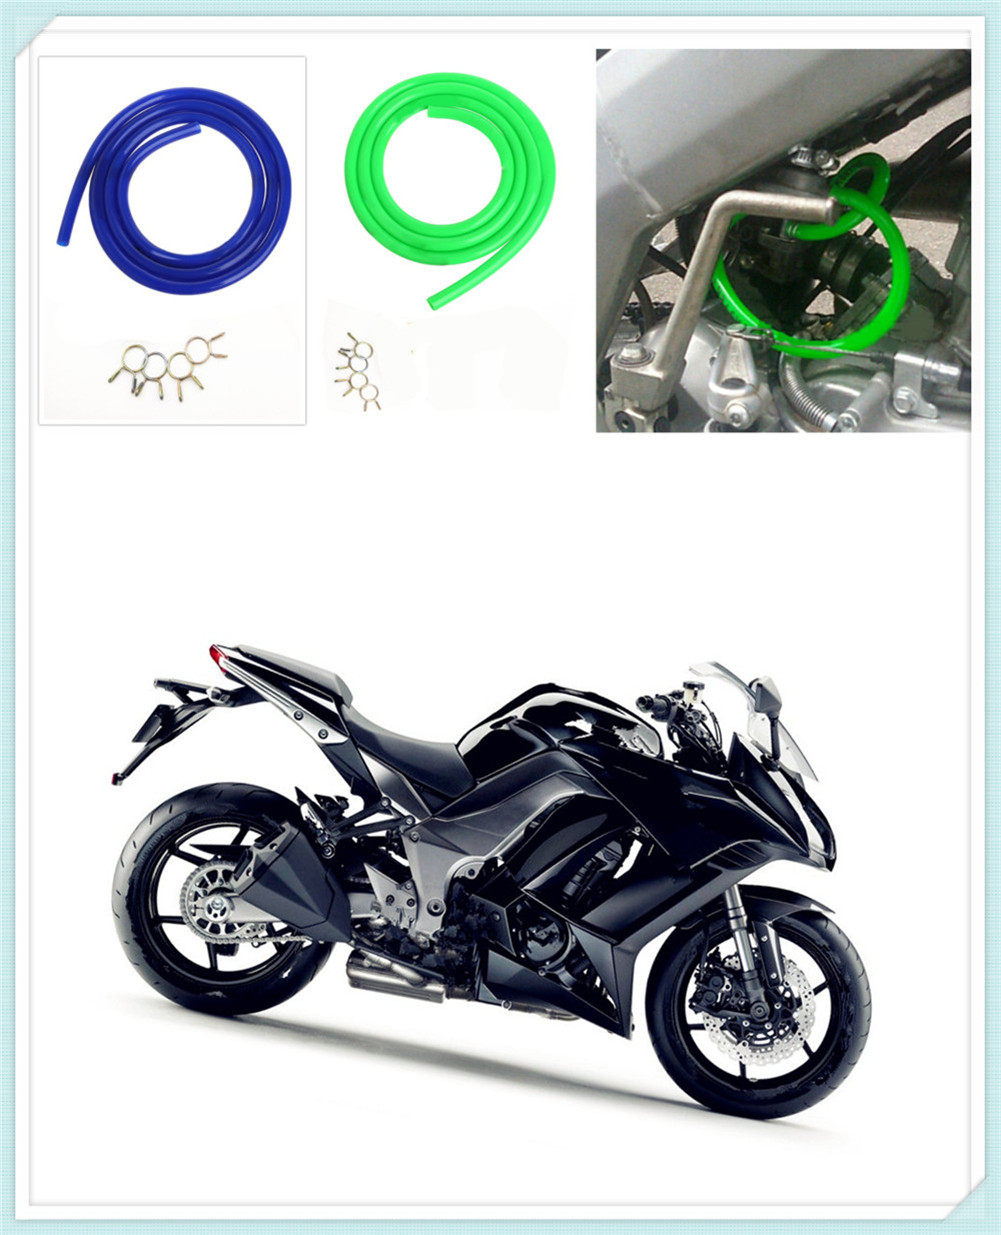 1 M motorcycle <font><b>parts</b></font> modified fuel pipe rubber high temperature for <font><b>YAMAHA</b></font> XP500 XP530 FZ600 SRX600 <font><b>XJ600</b></font> FZ400 R FZX700 FAZER image